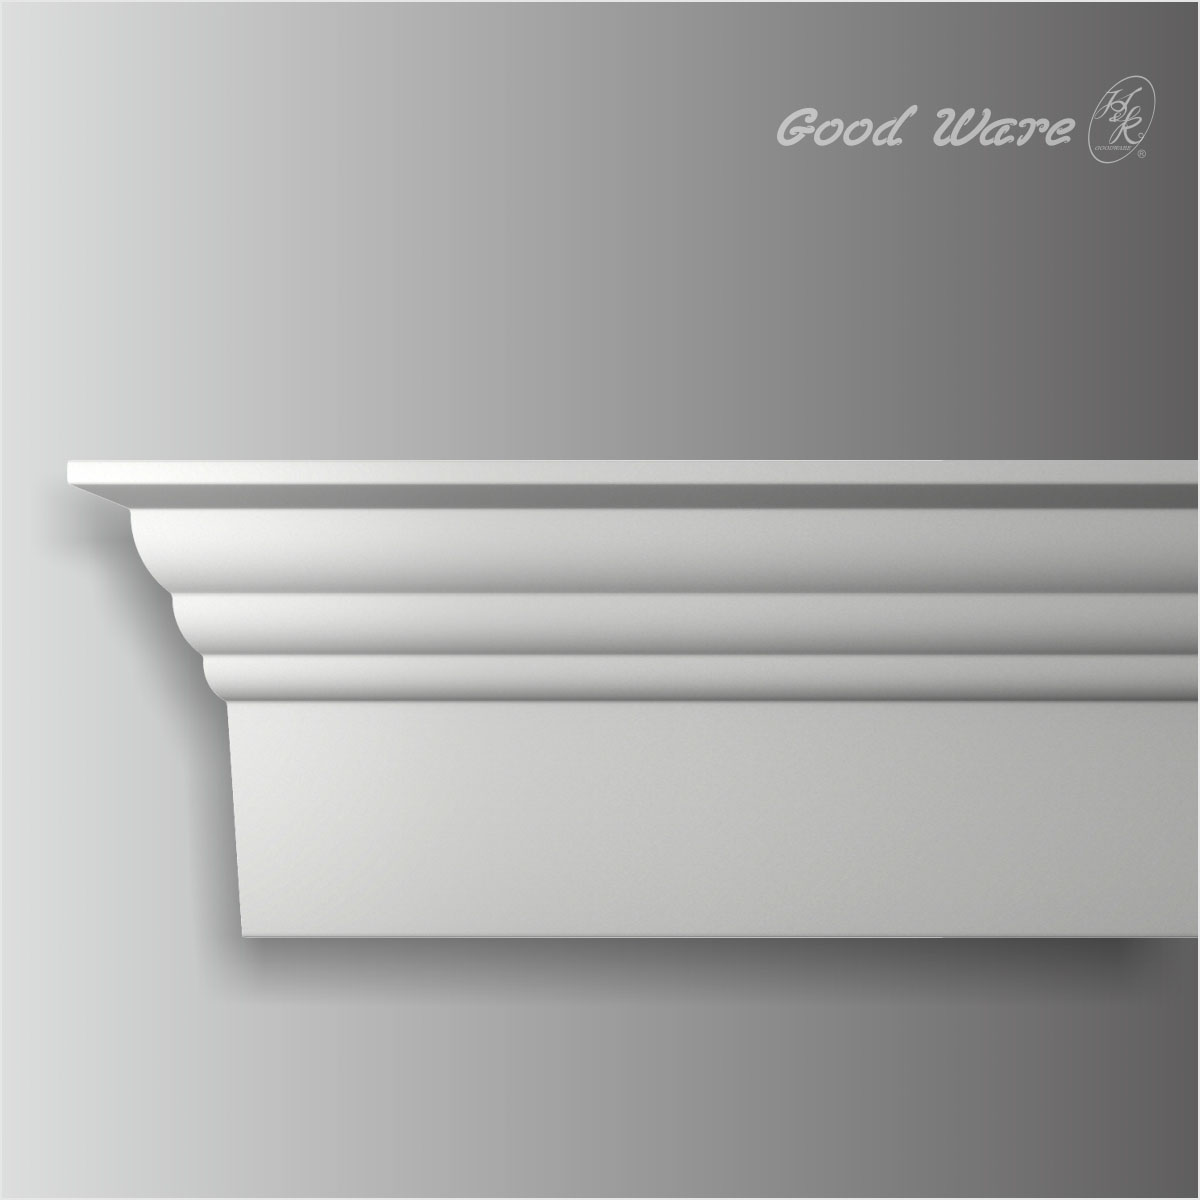 Buy crown moulding on H&K Goodware